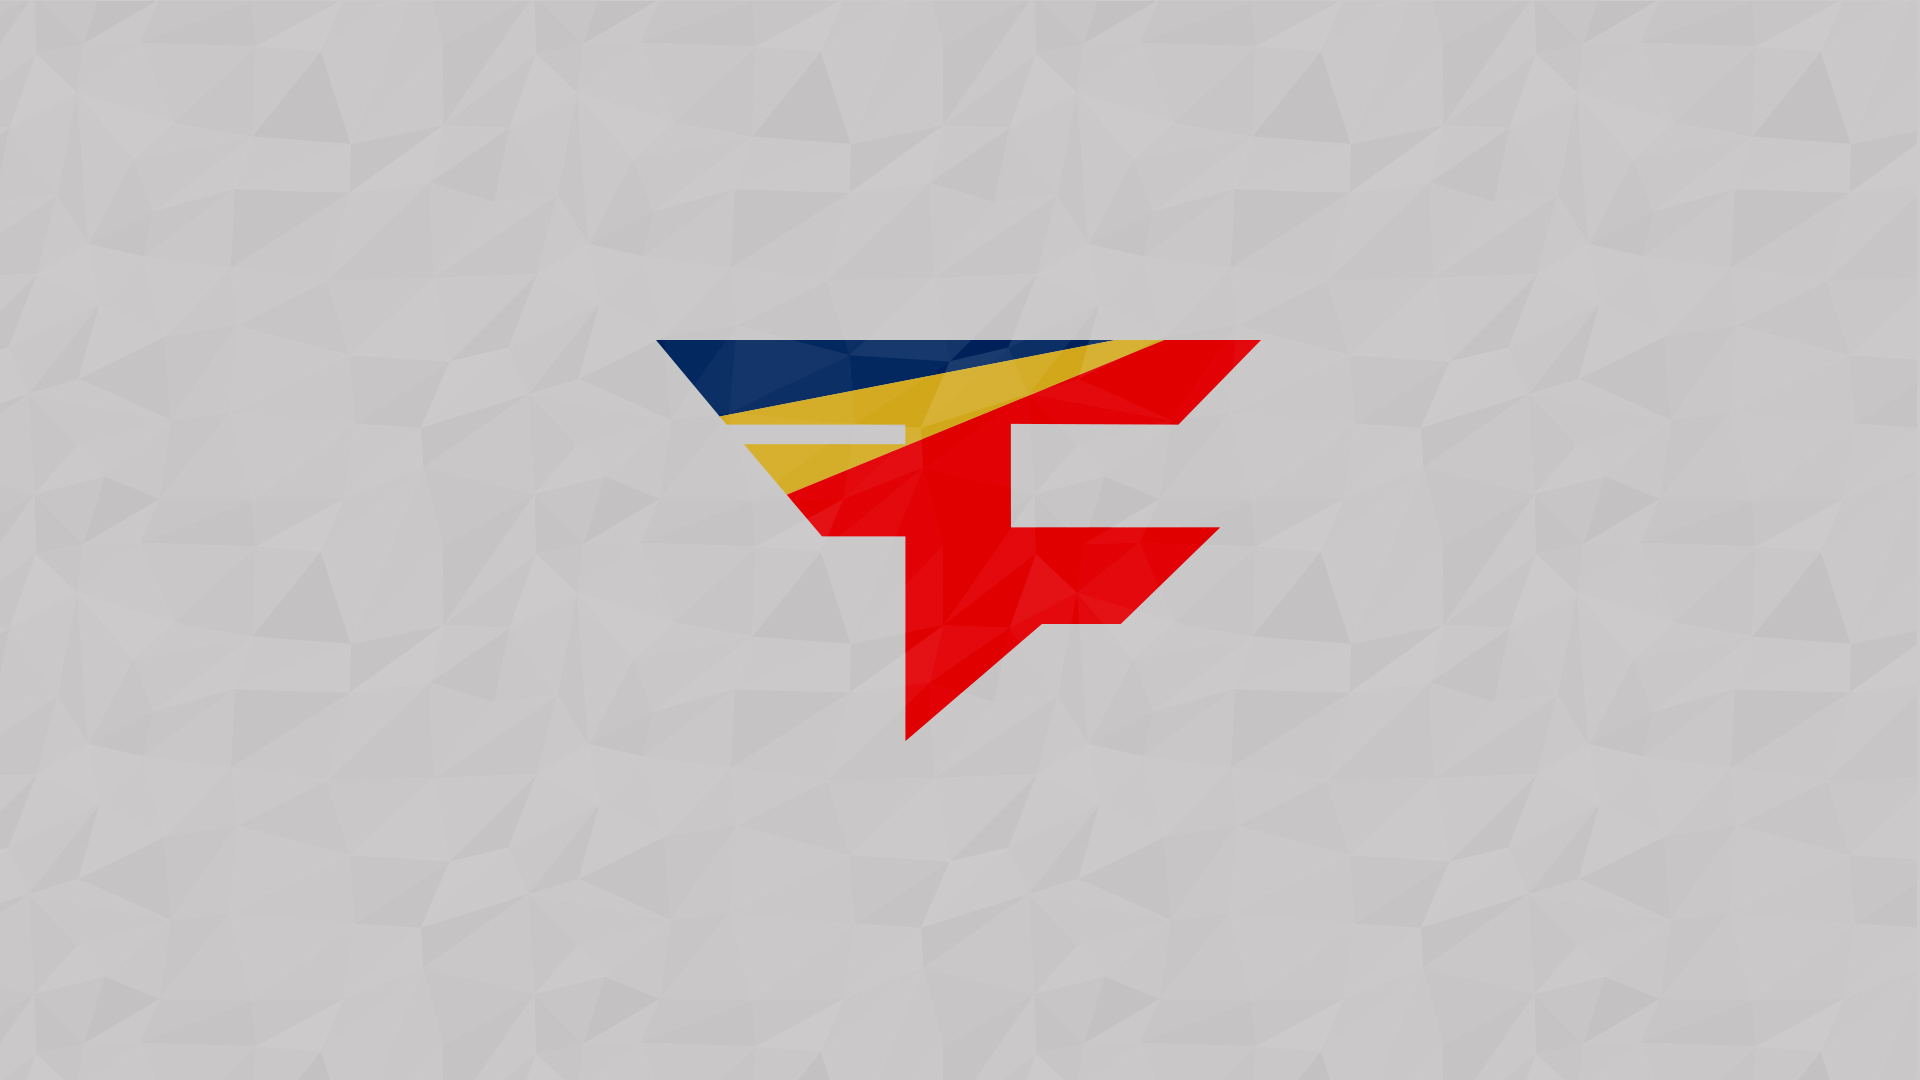 faze wallpaper android